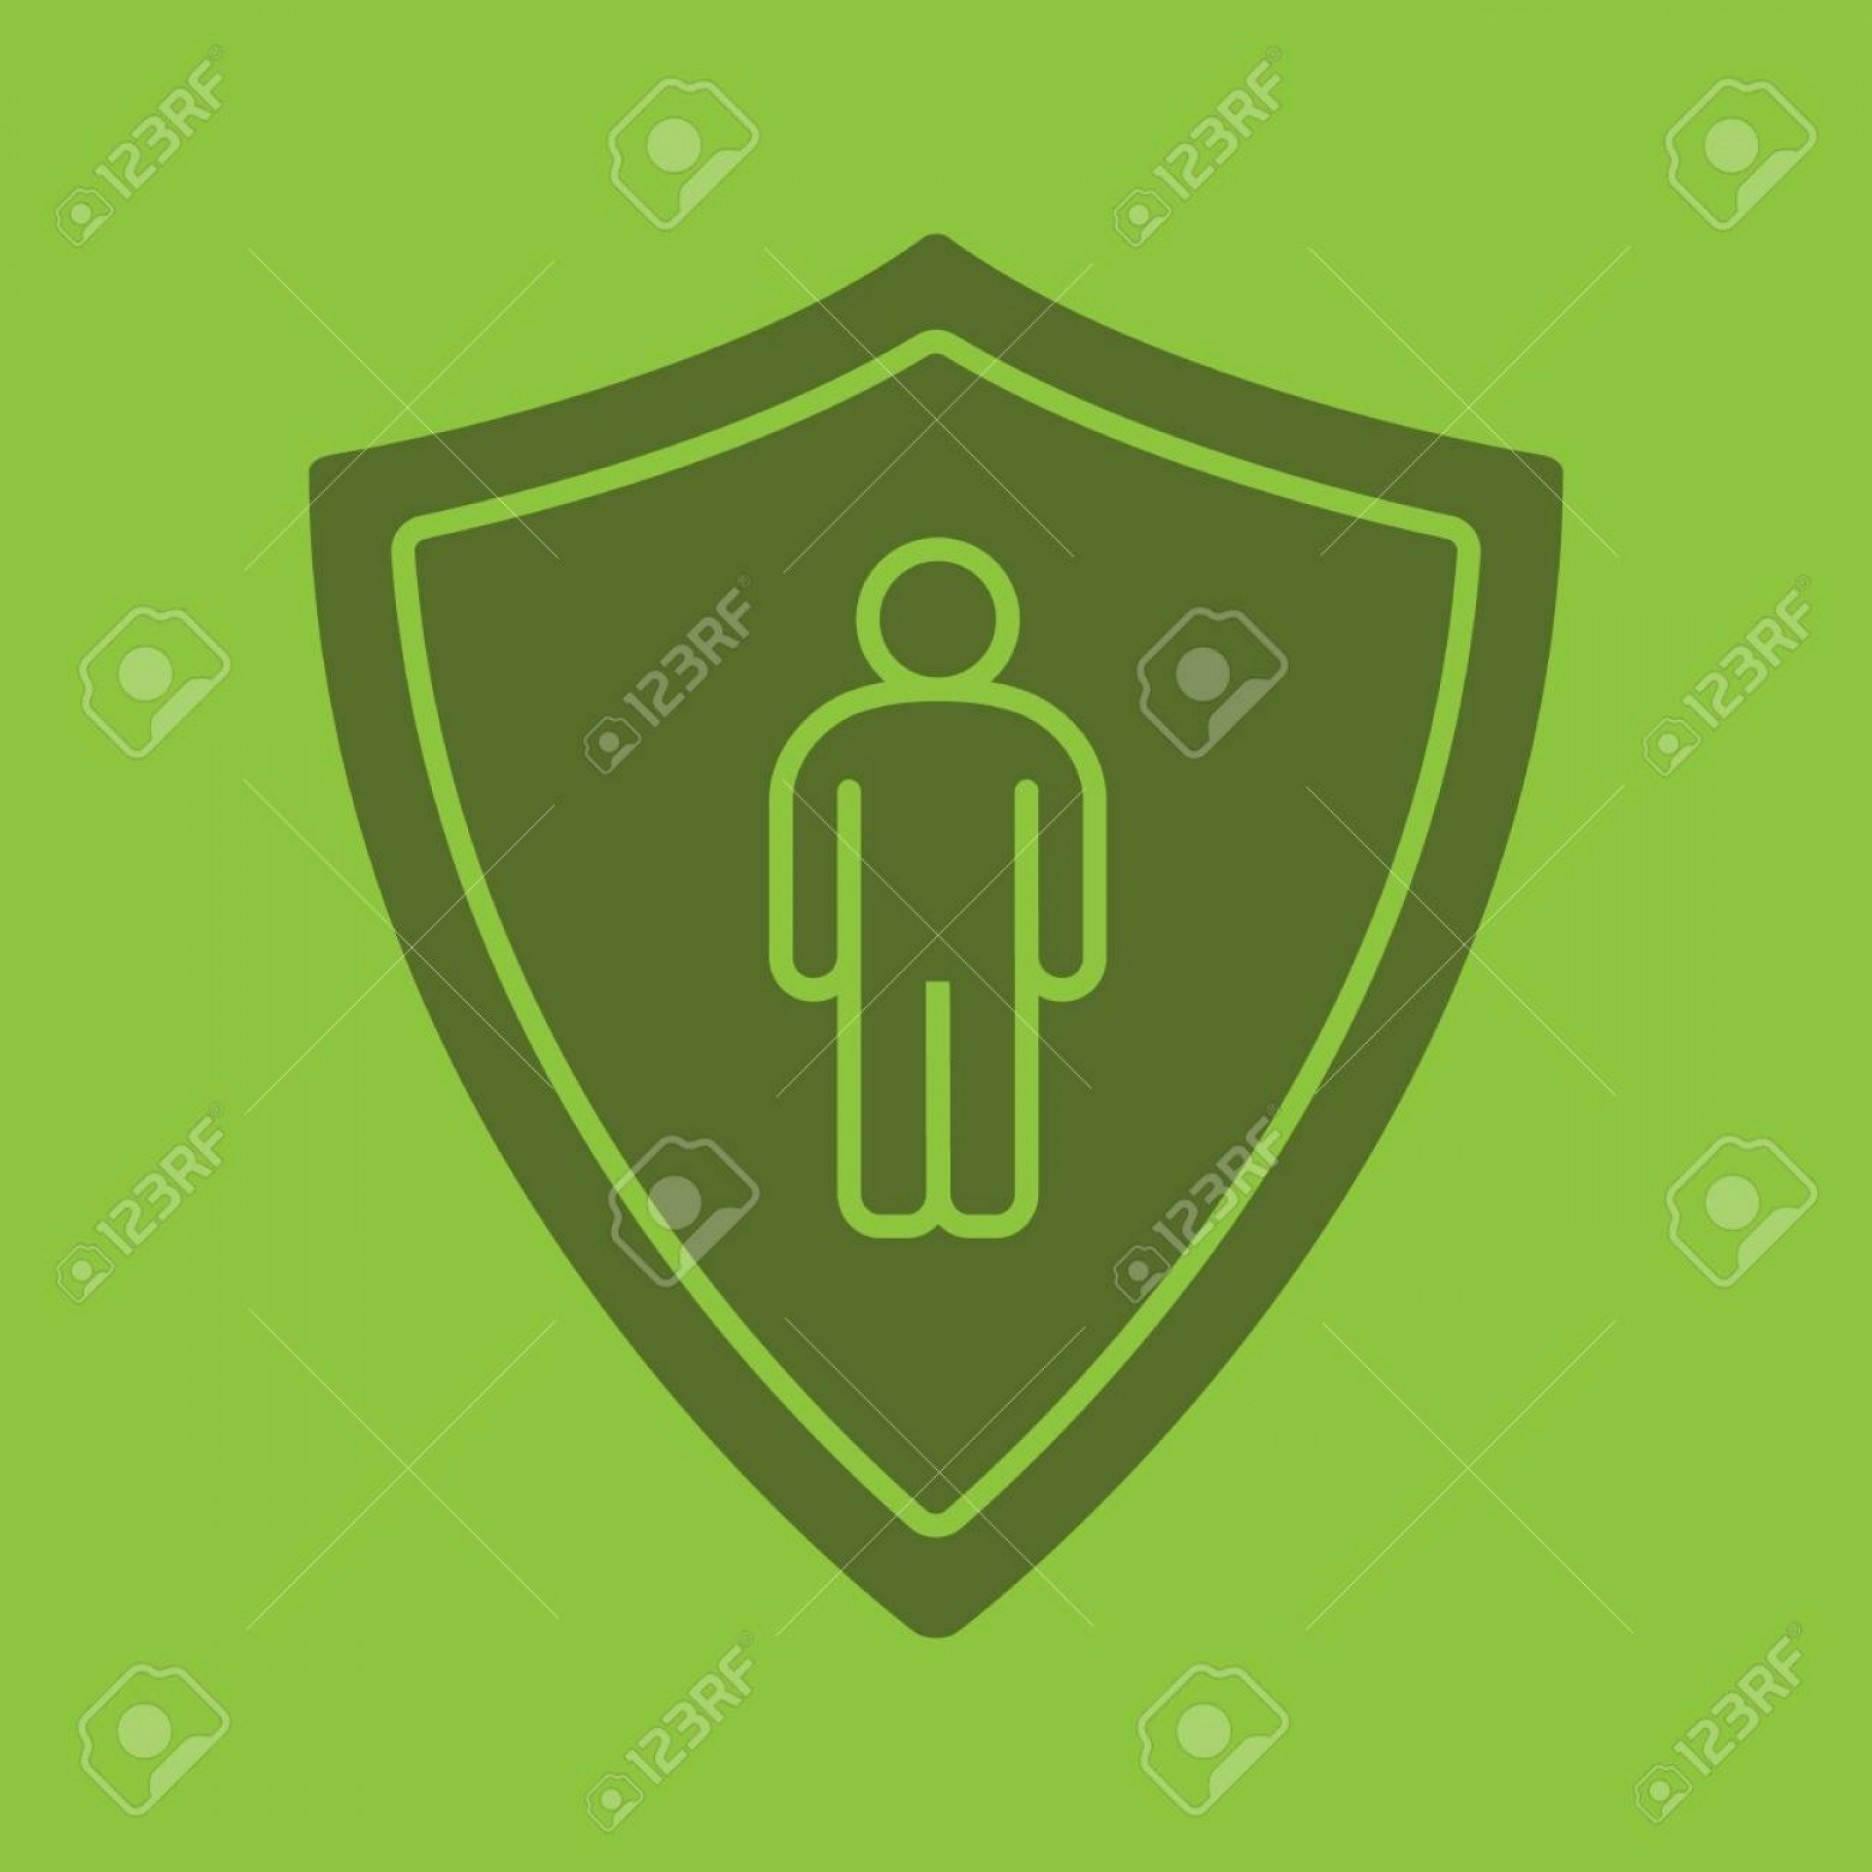 Color Guard Silhouette Vector: Photostock Vector Bodyguard Glyph Color Icon Silhouette Symbol Protection Shield With Man Negative Space Vector Isolat